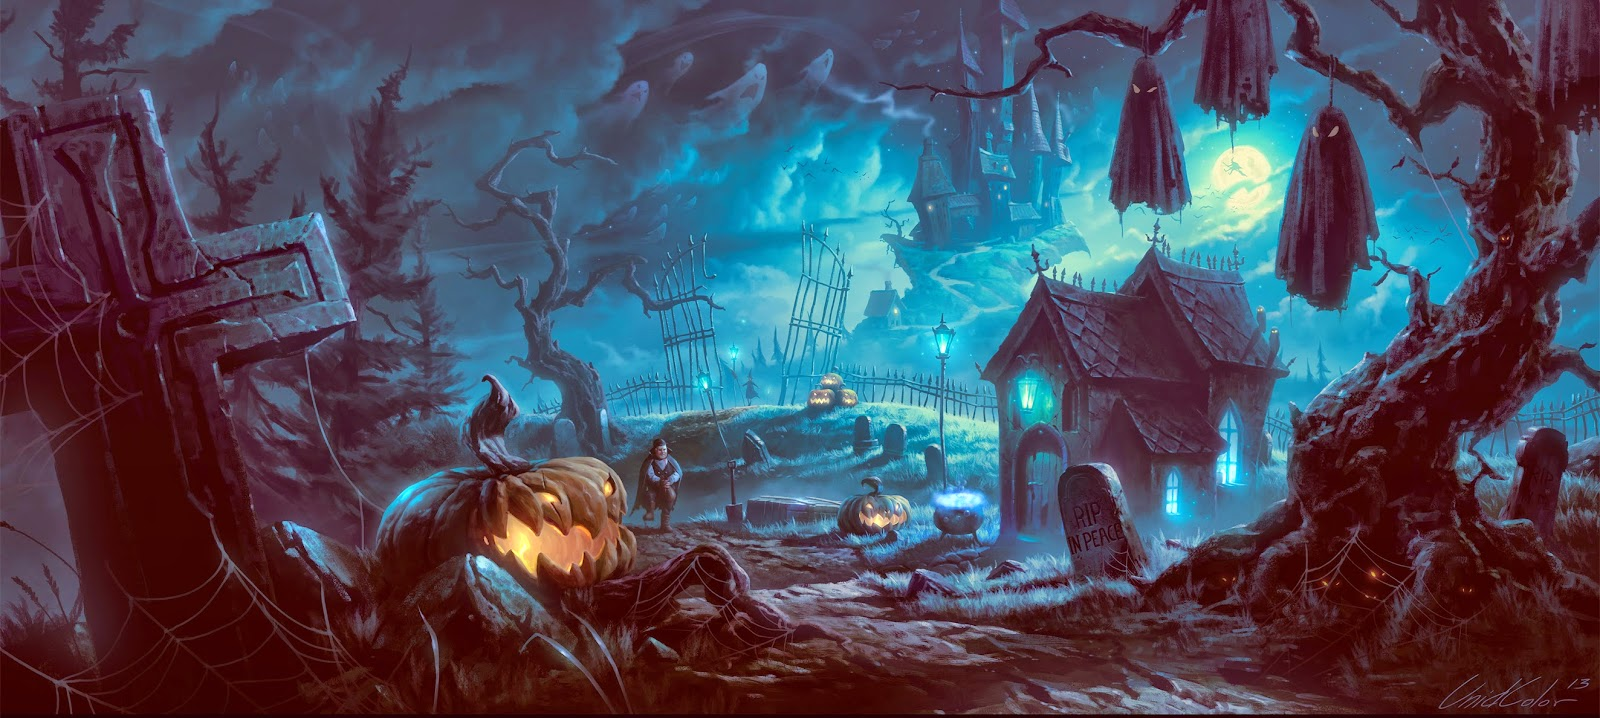 3500x1571-Halloween-graveyard-pumpkin-wallpapers-HD-widescreen.jpg